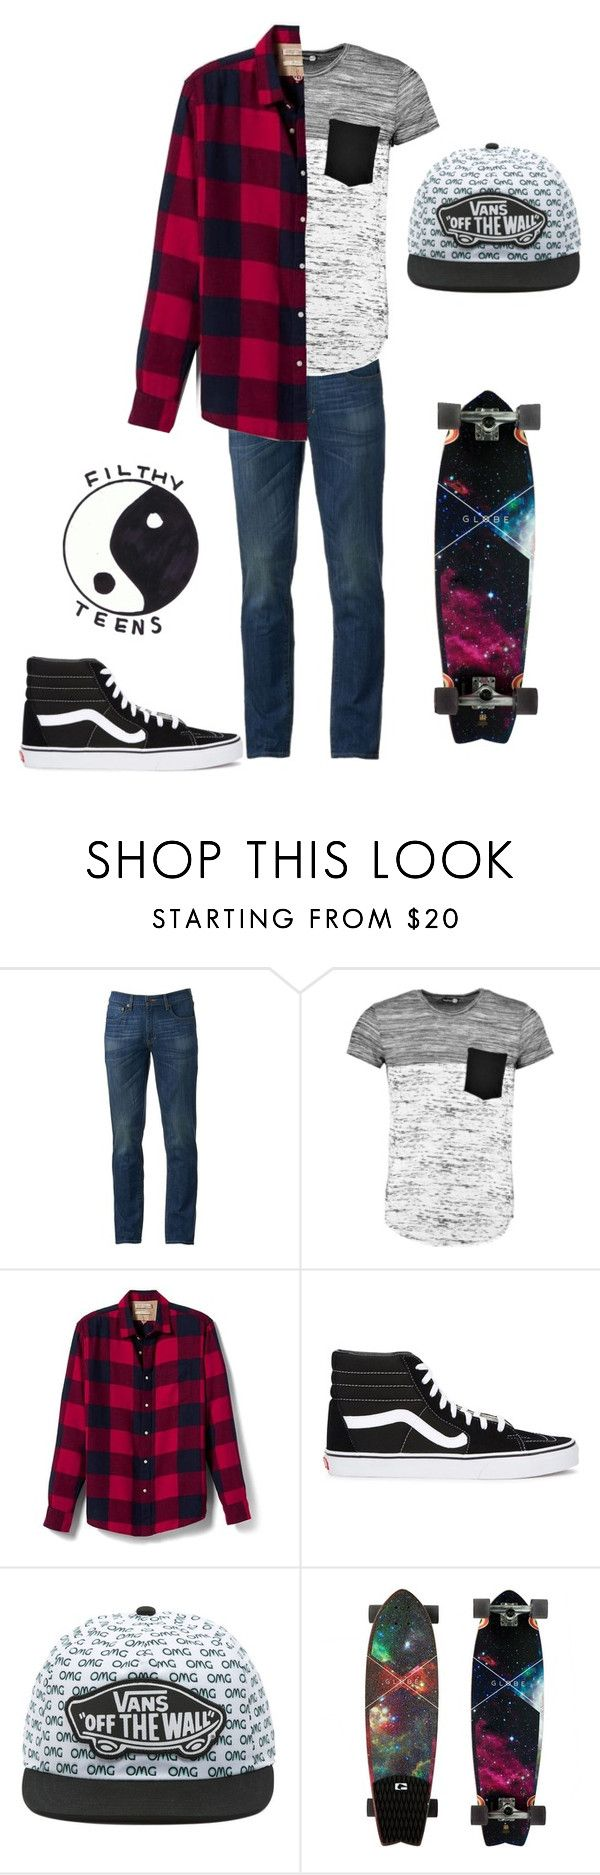 """""""Androgynous Pizza Date"""" by rock-save-the-queen on Polyvore featuring Urban Pipeline, Boohoo, Banana Republic, Vans, teens, angst, androgyny and pizzadate"""